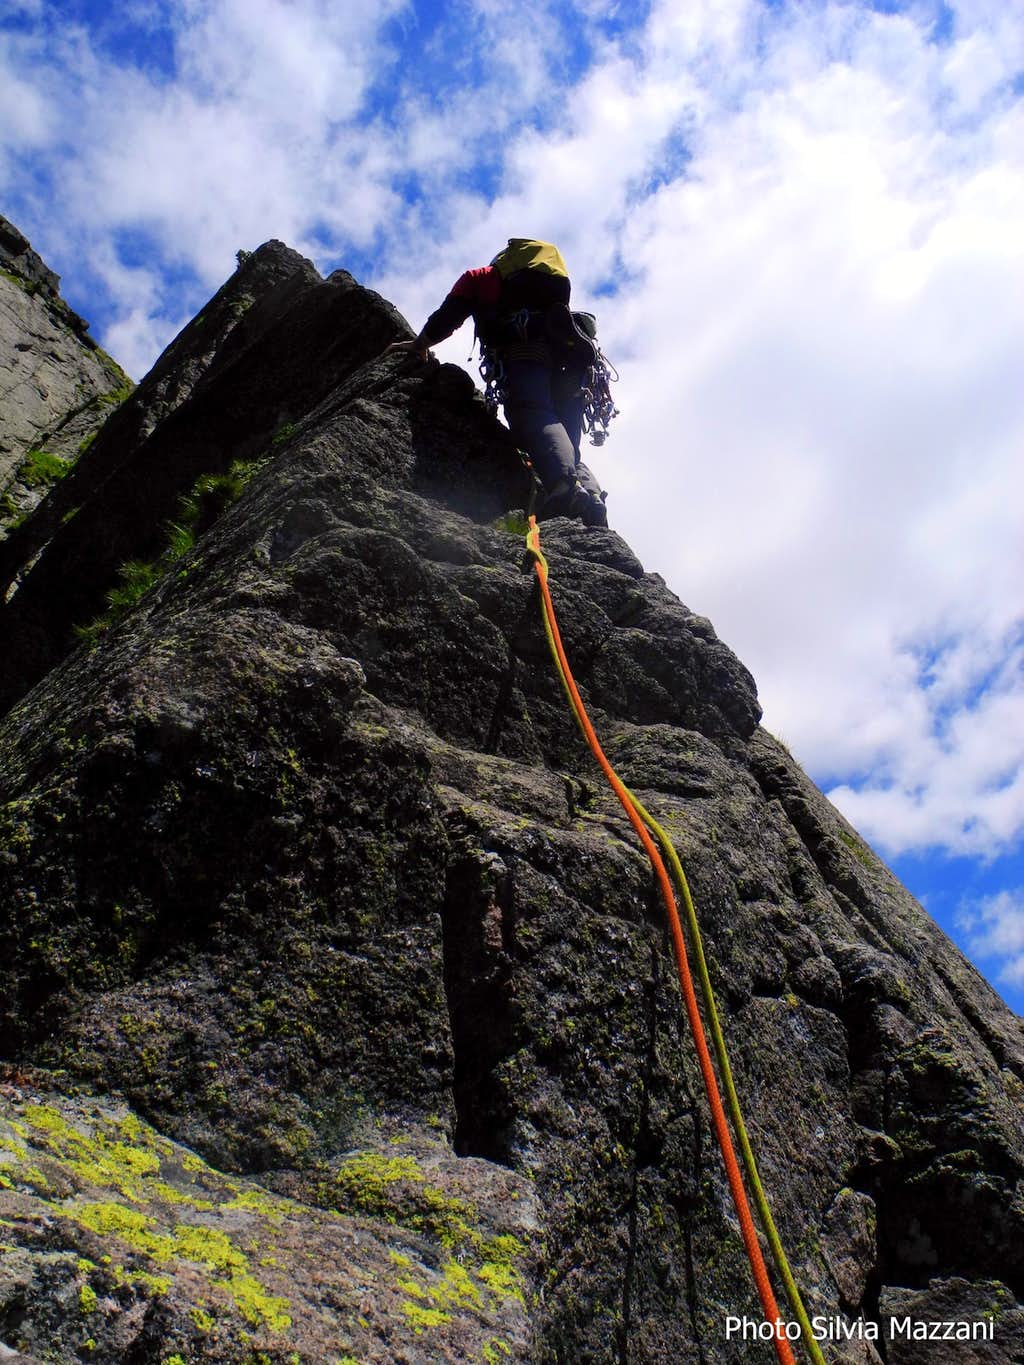 Holzerkante crux pitch